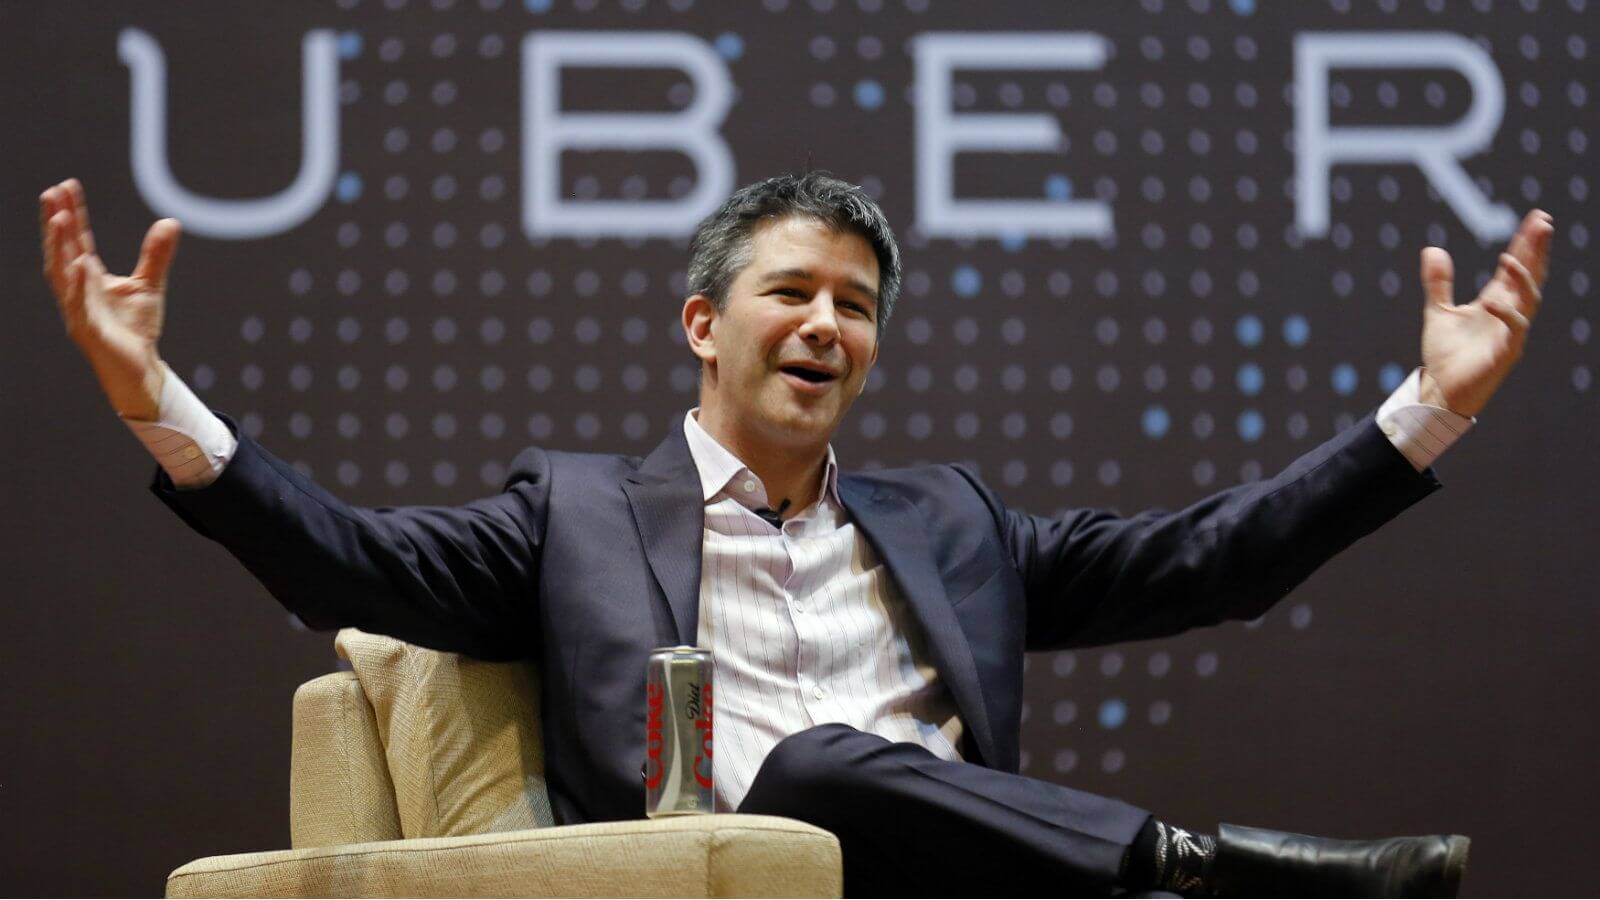 Travis kalanick fights with uber driver